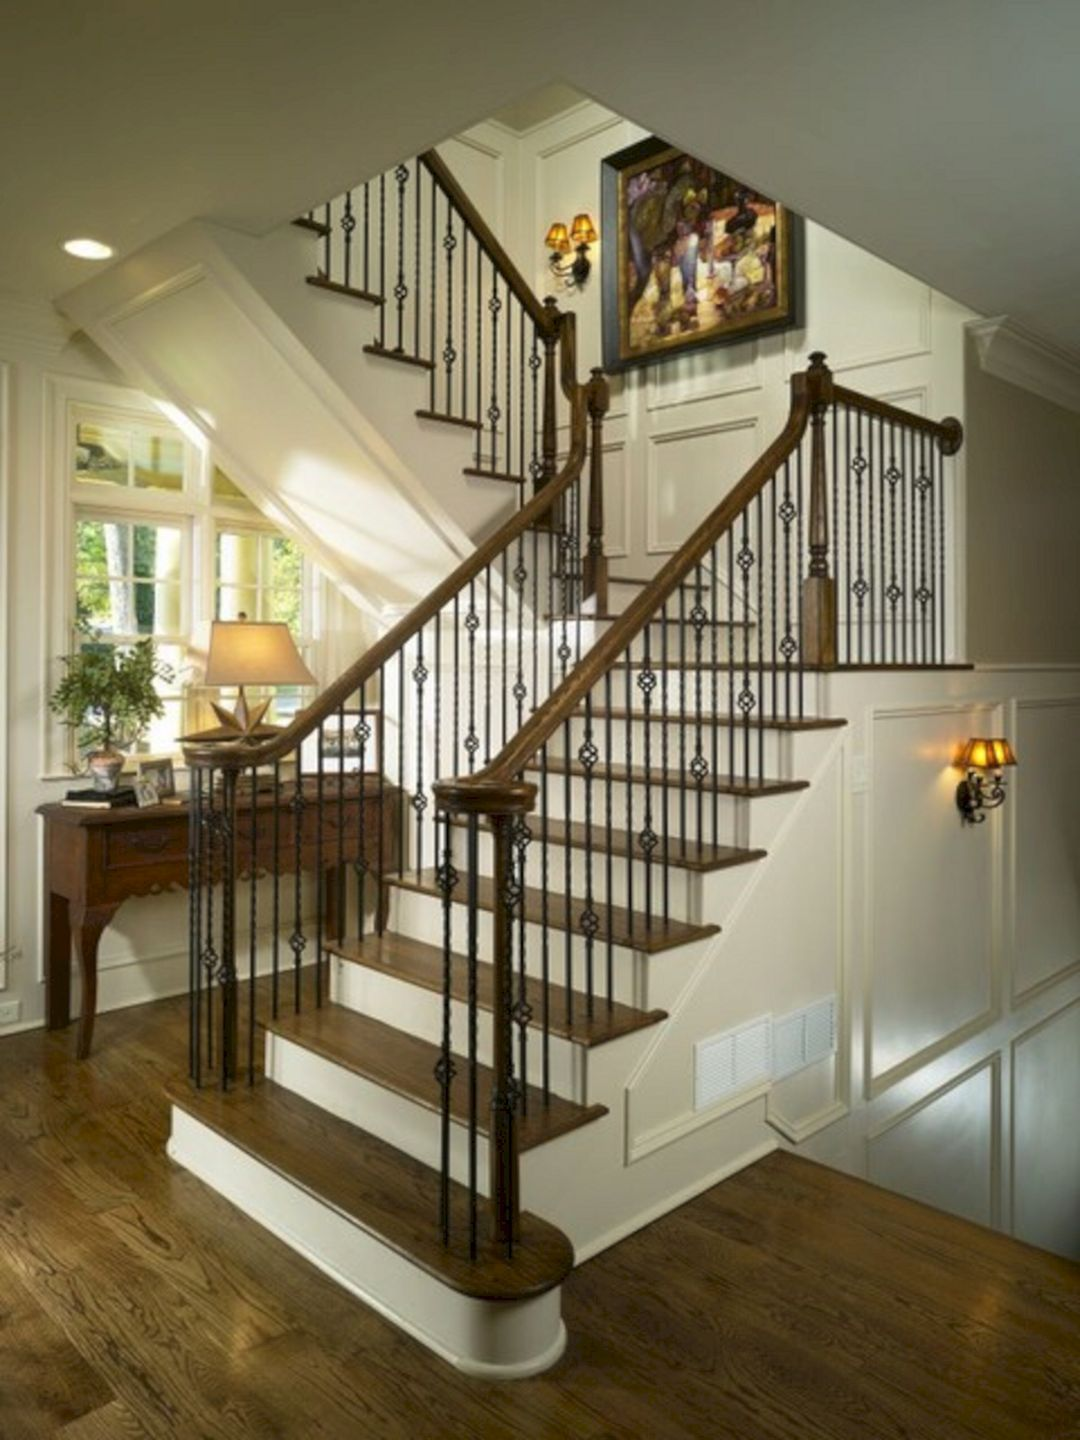 High Quality 45+ Beautiful Stairway Decorating Ideas For Attractive Your Home